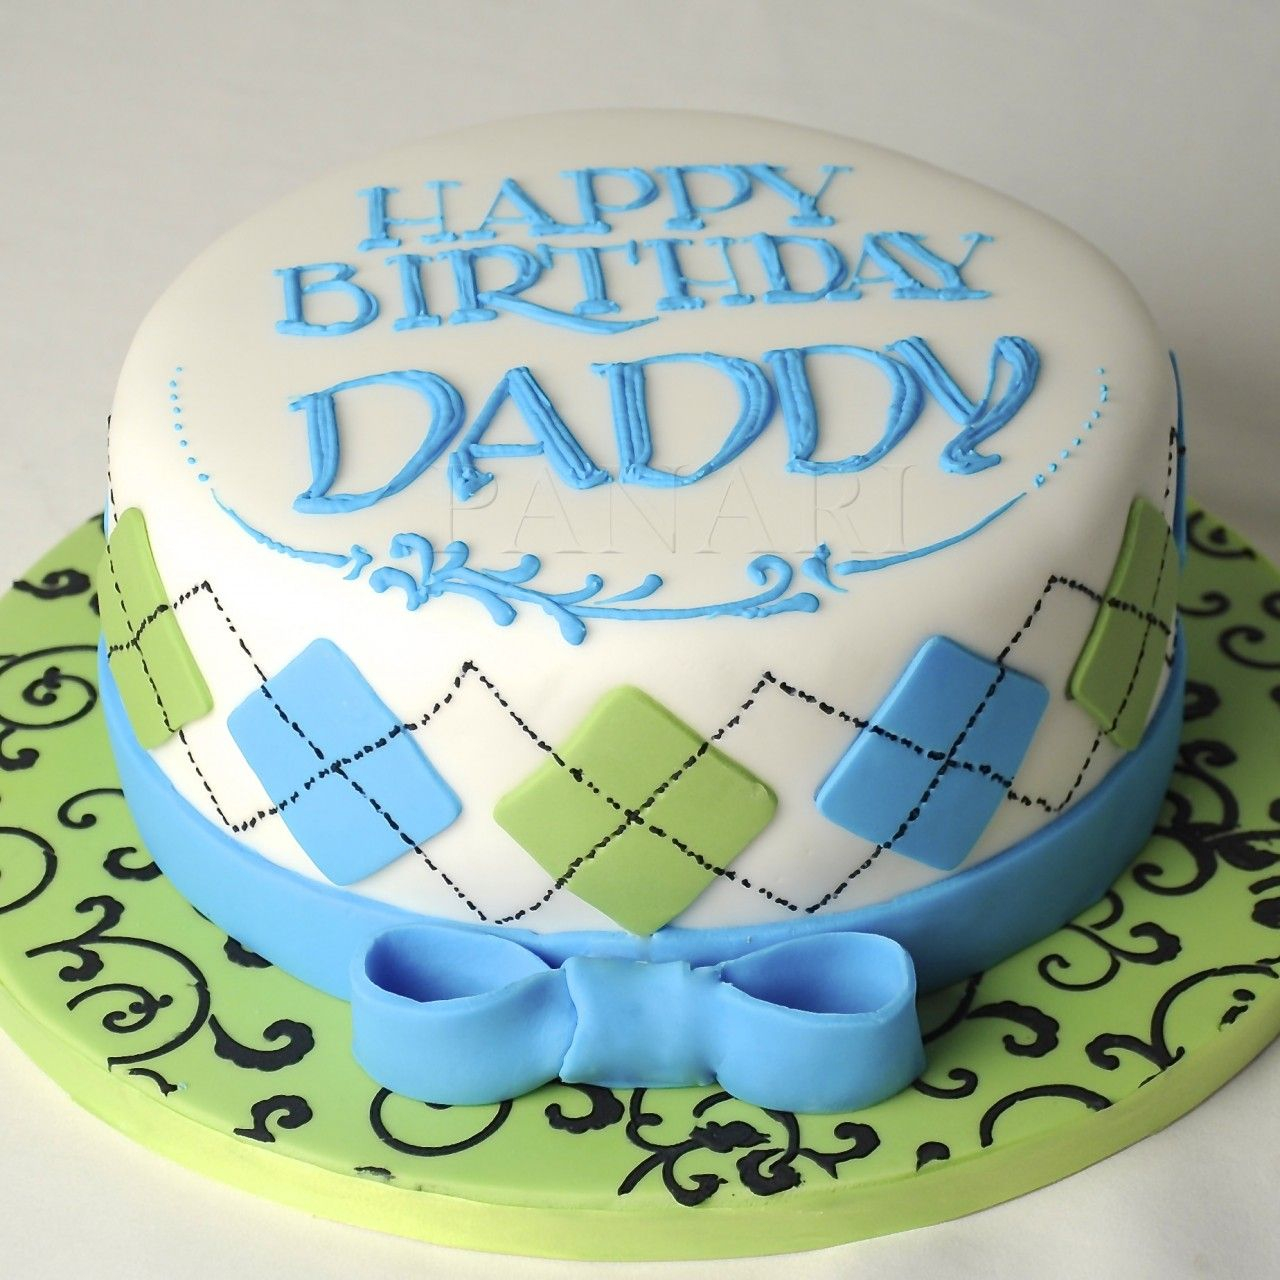 Happy Birthday Cakes For Him Happy Birthday Daddy Cakes In 2019 Cake